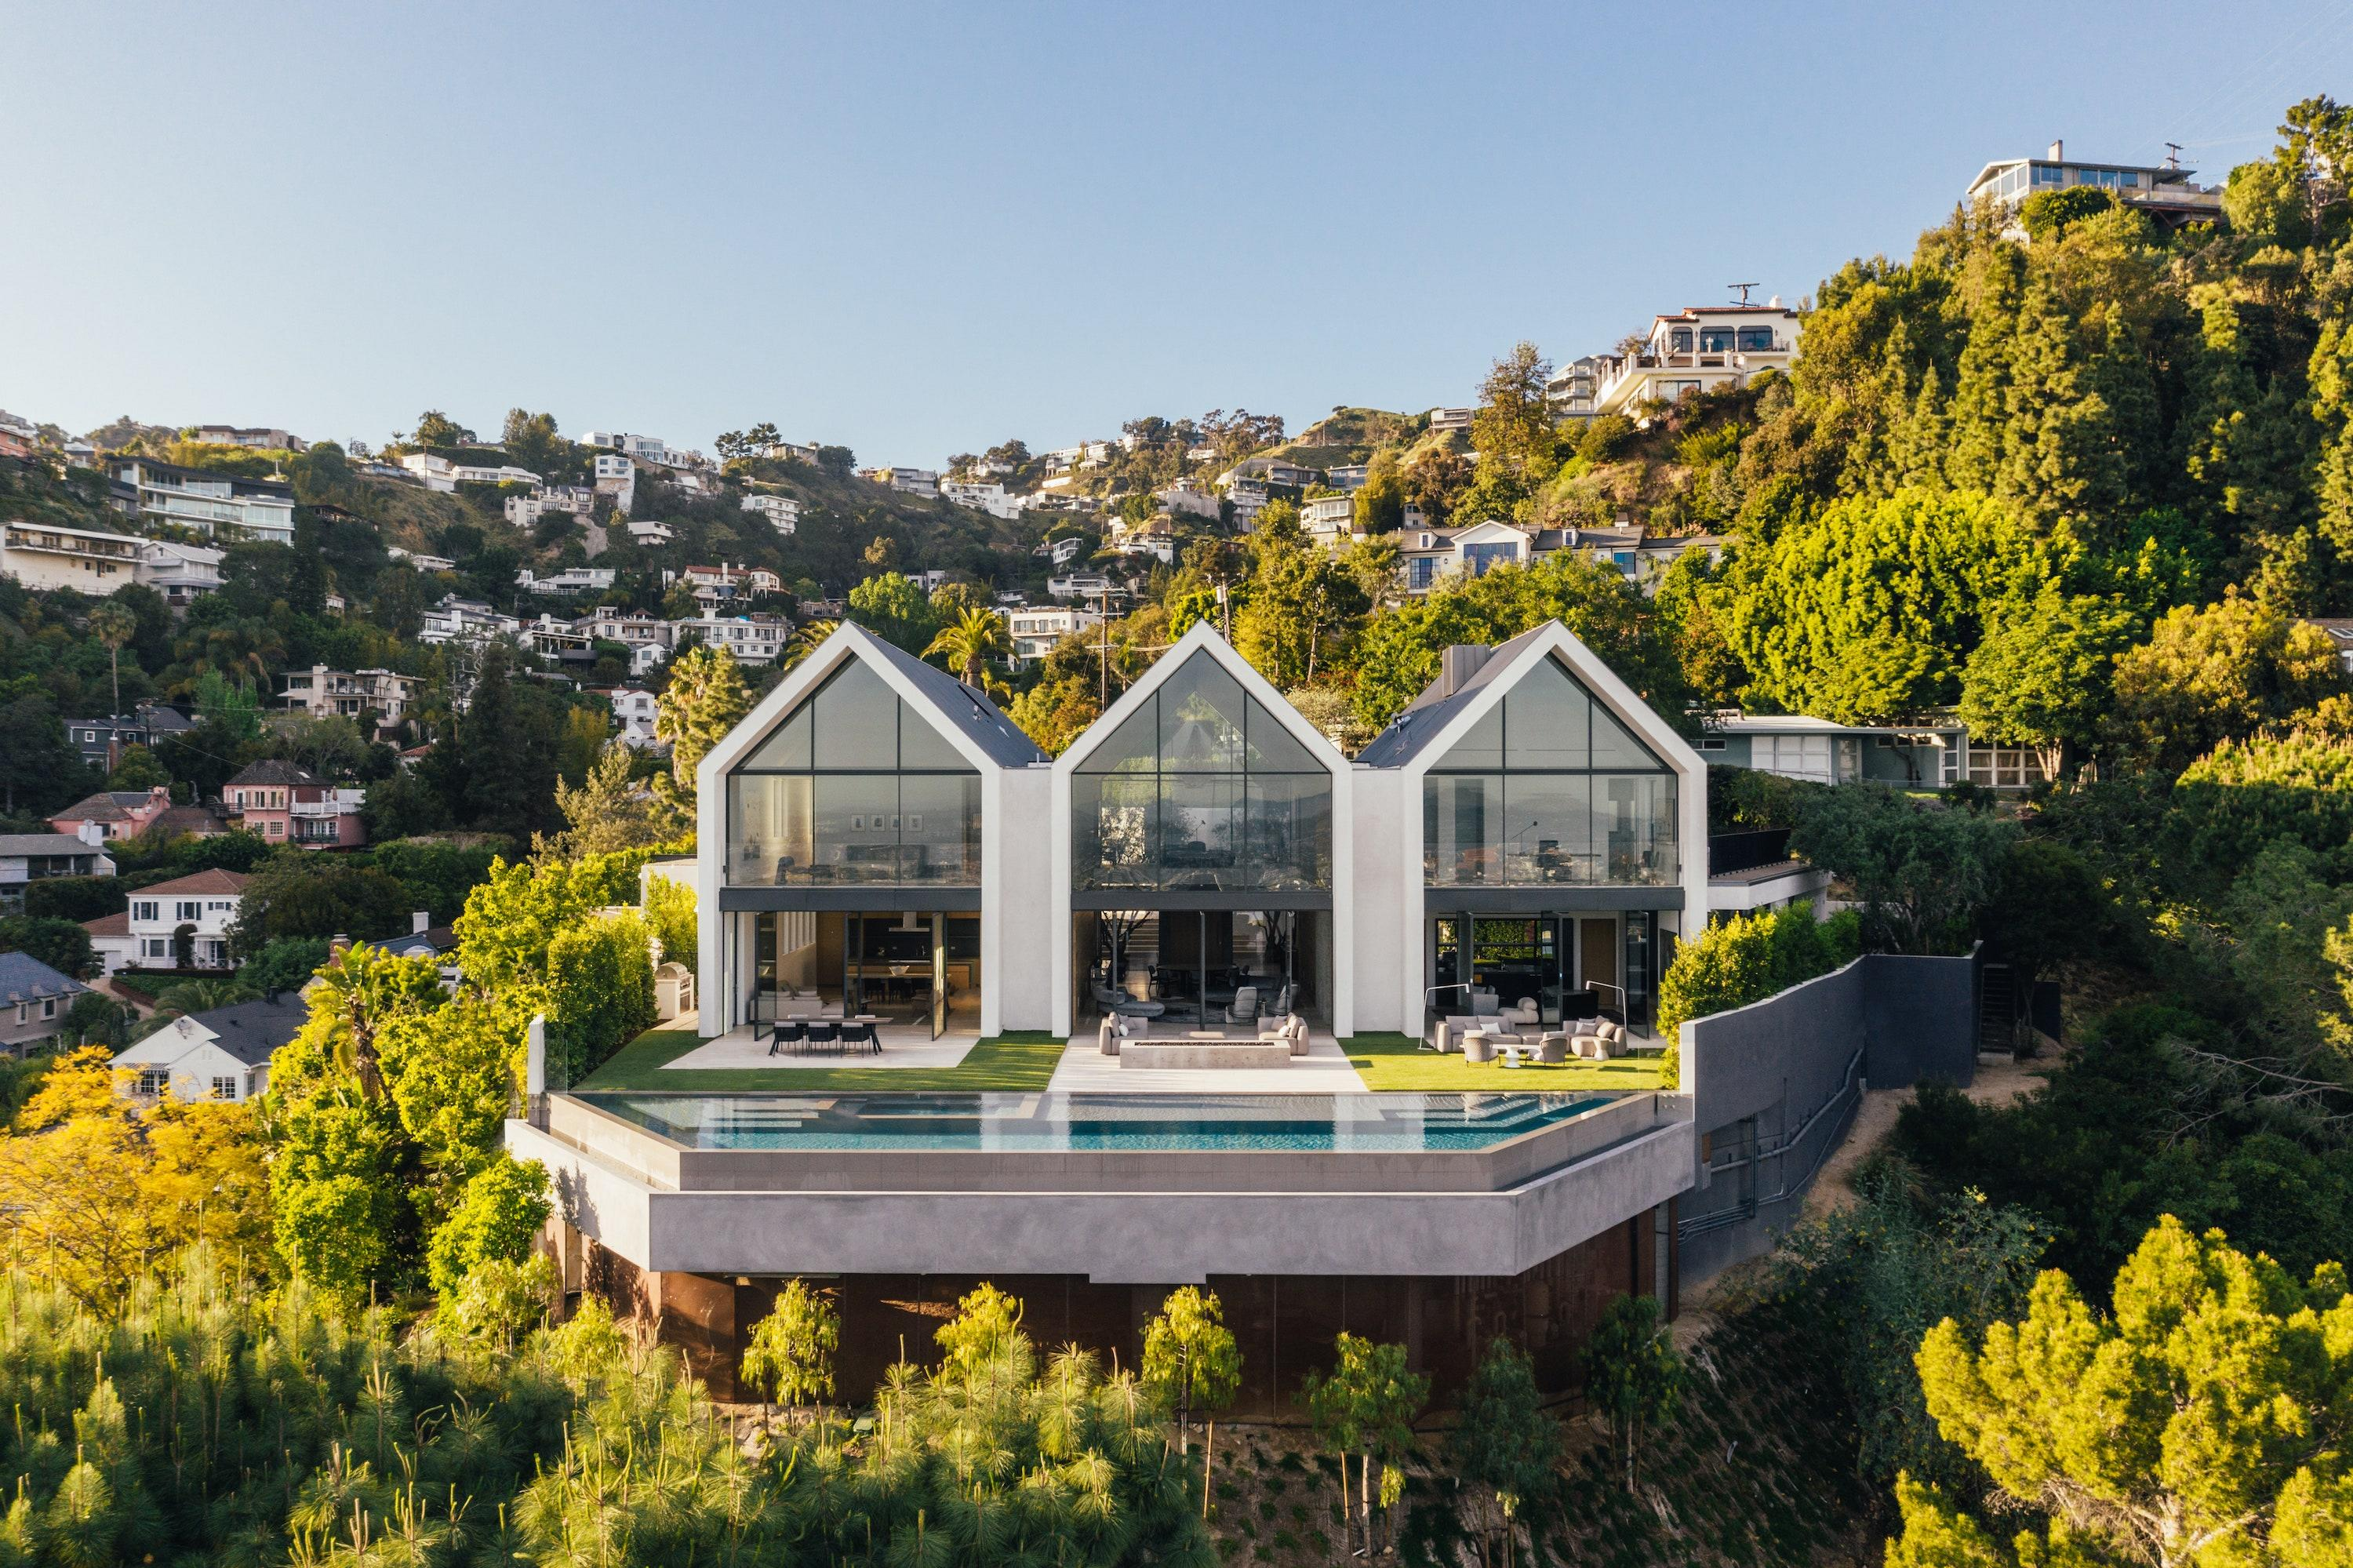 The stunning modernist home is located in the Hollywood Hills enclave of Los Angeles.